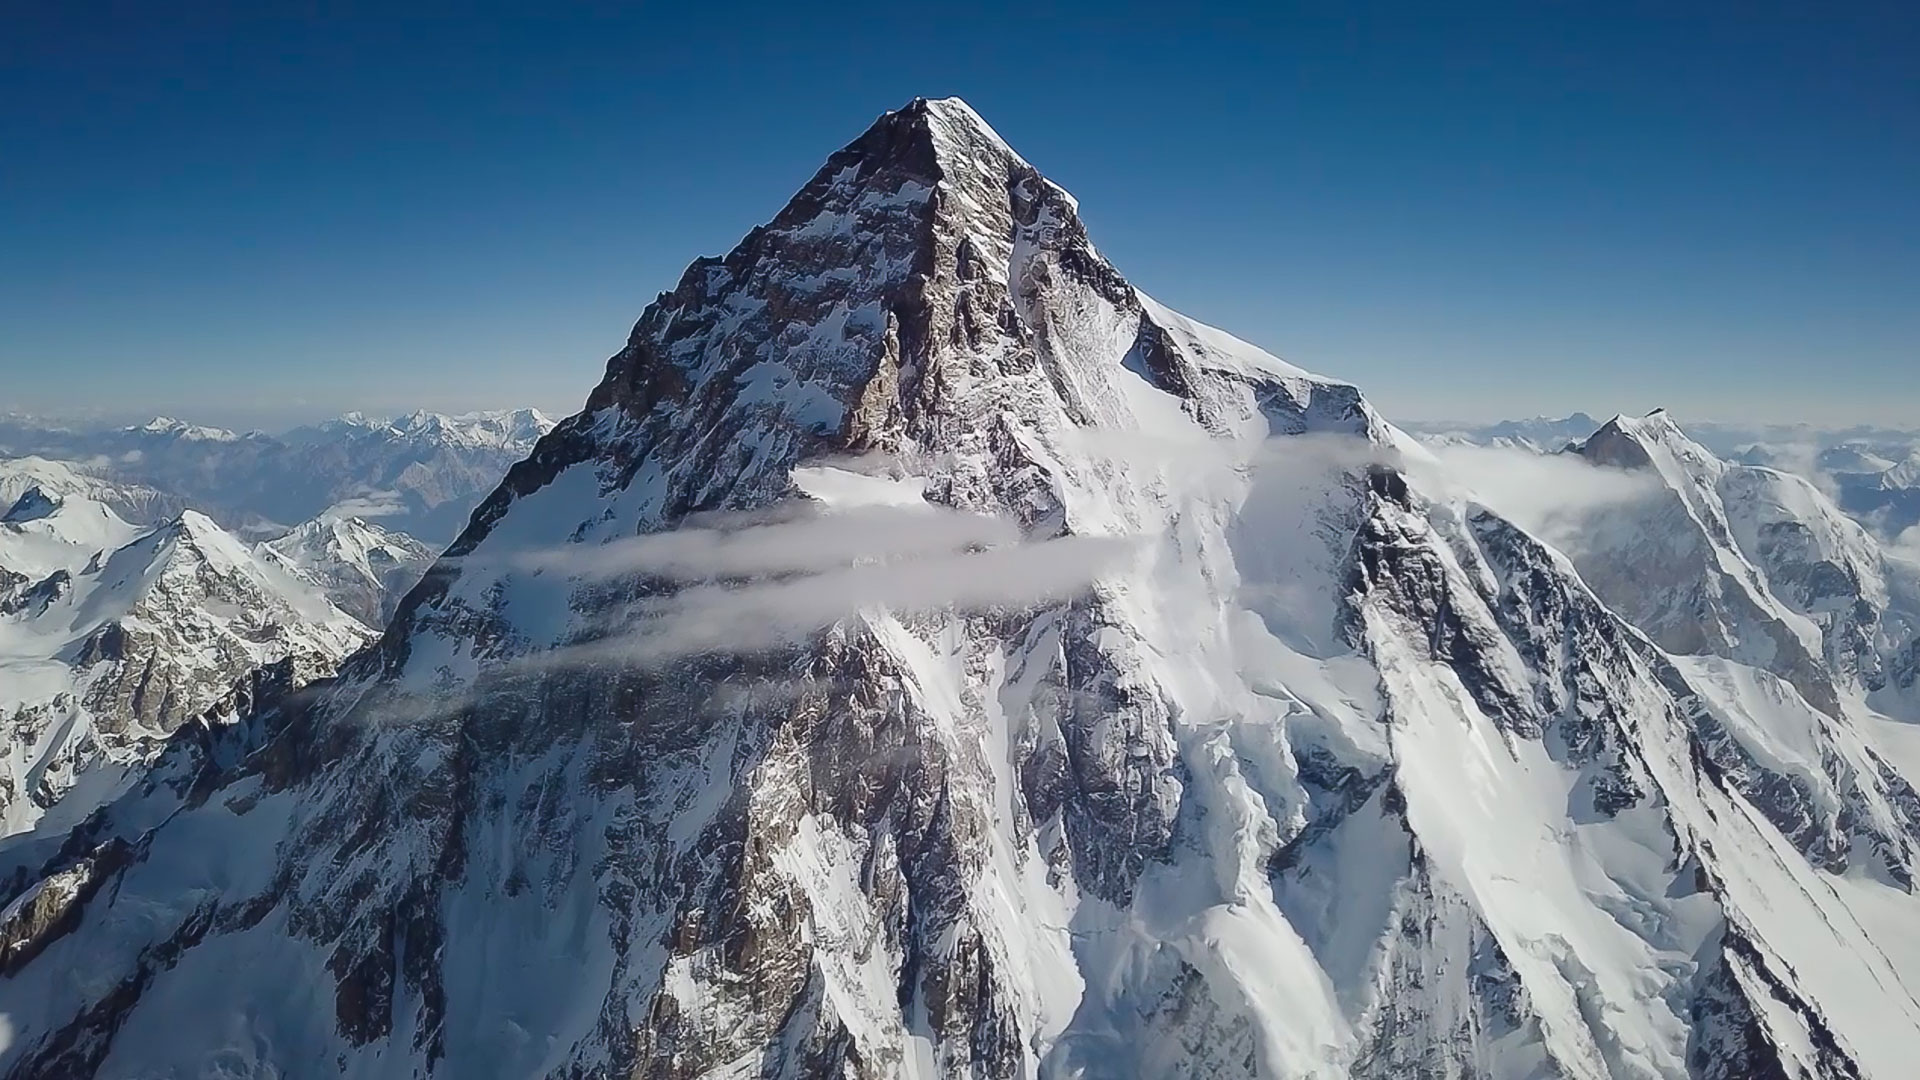 Polish Mountaineer Makes First Successful Ski Descent Of K2 Powder